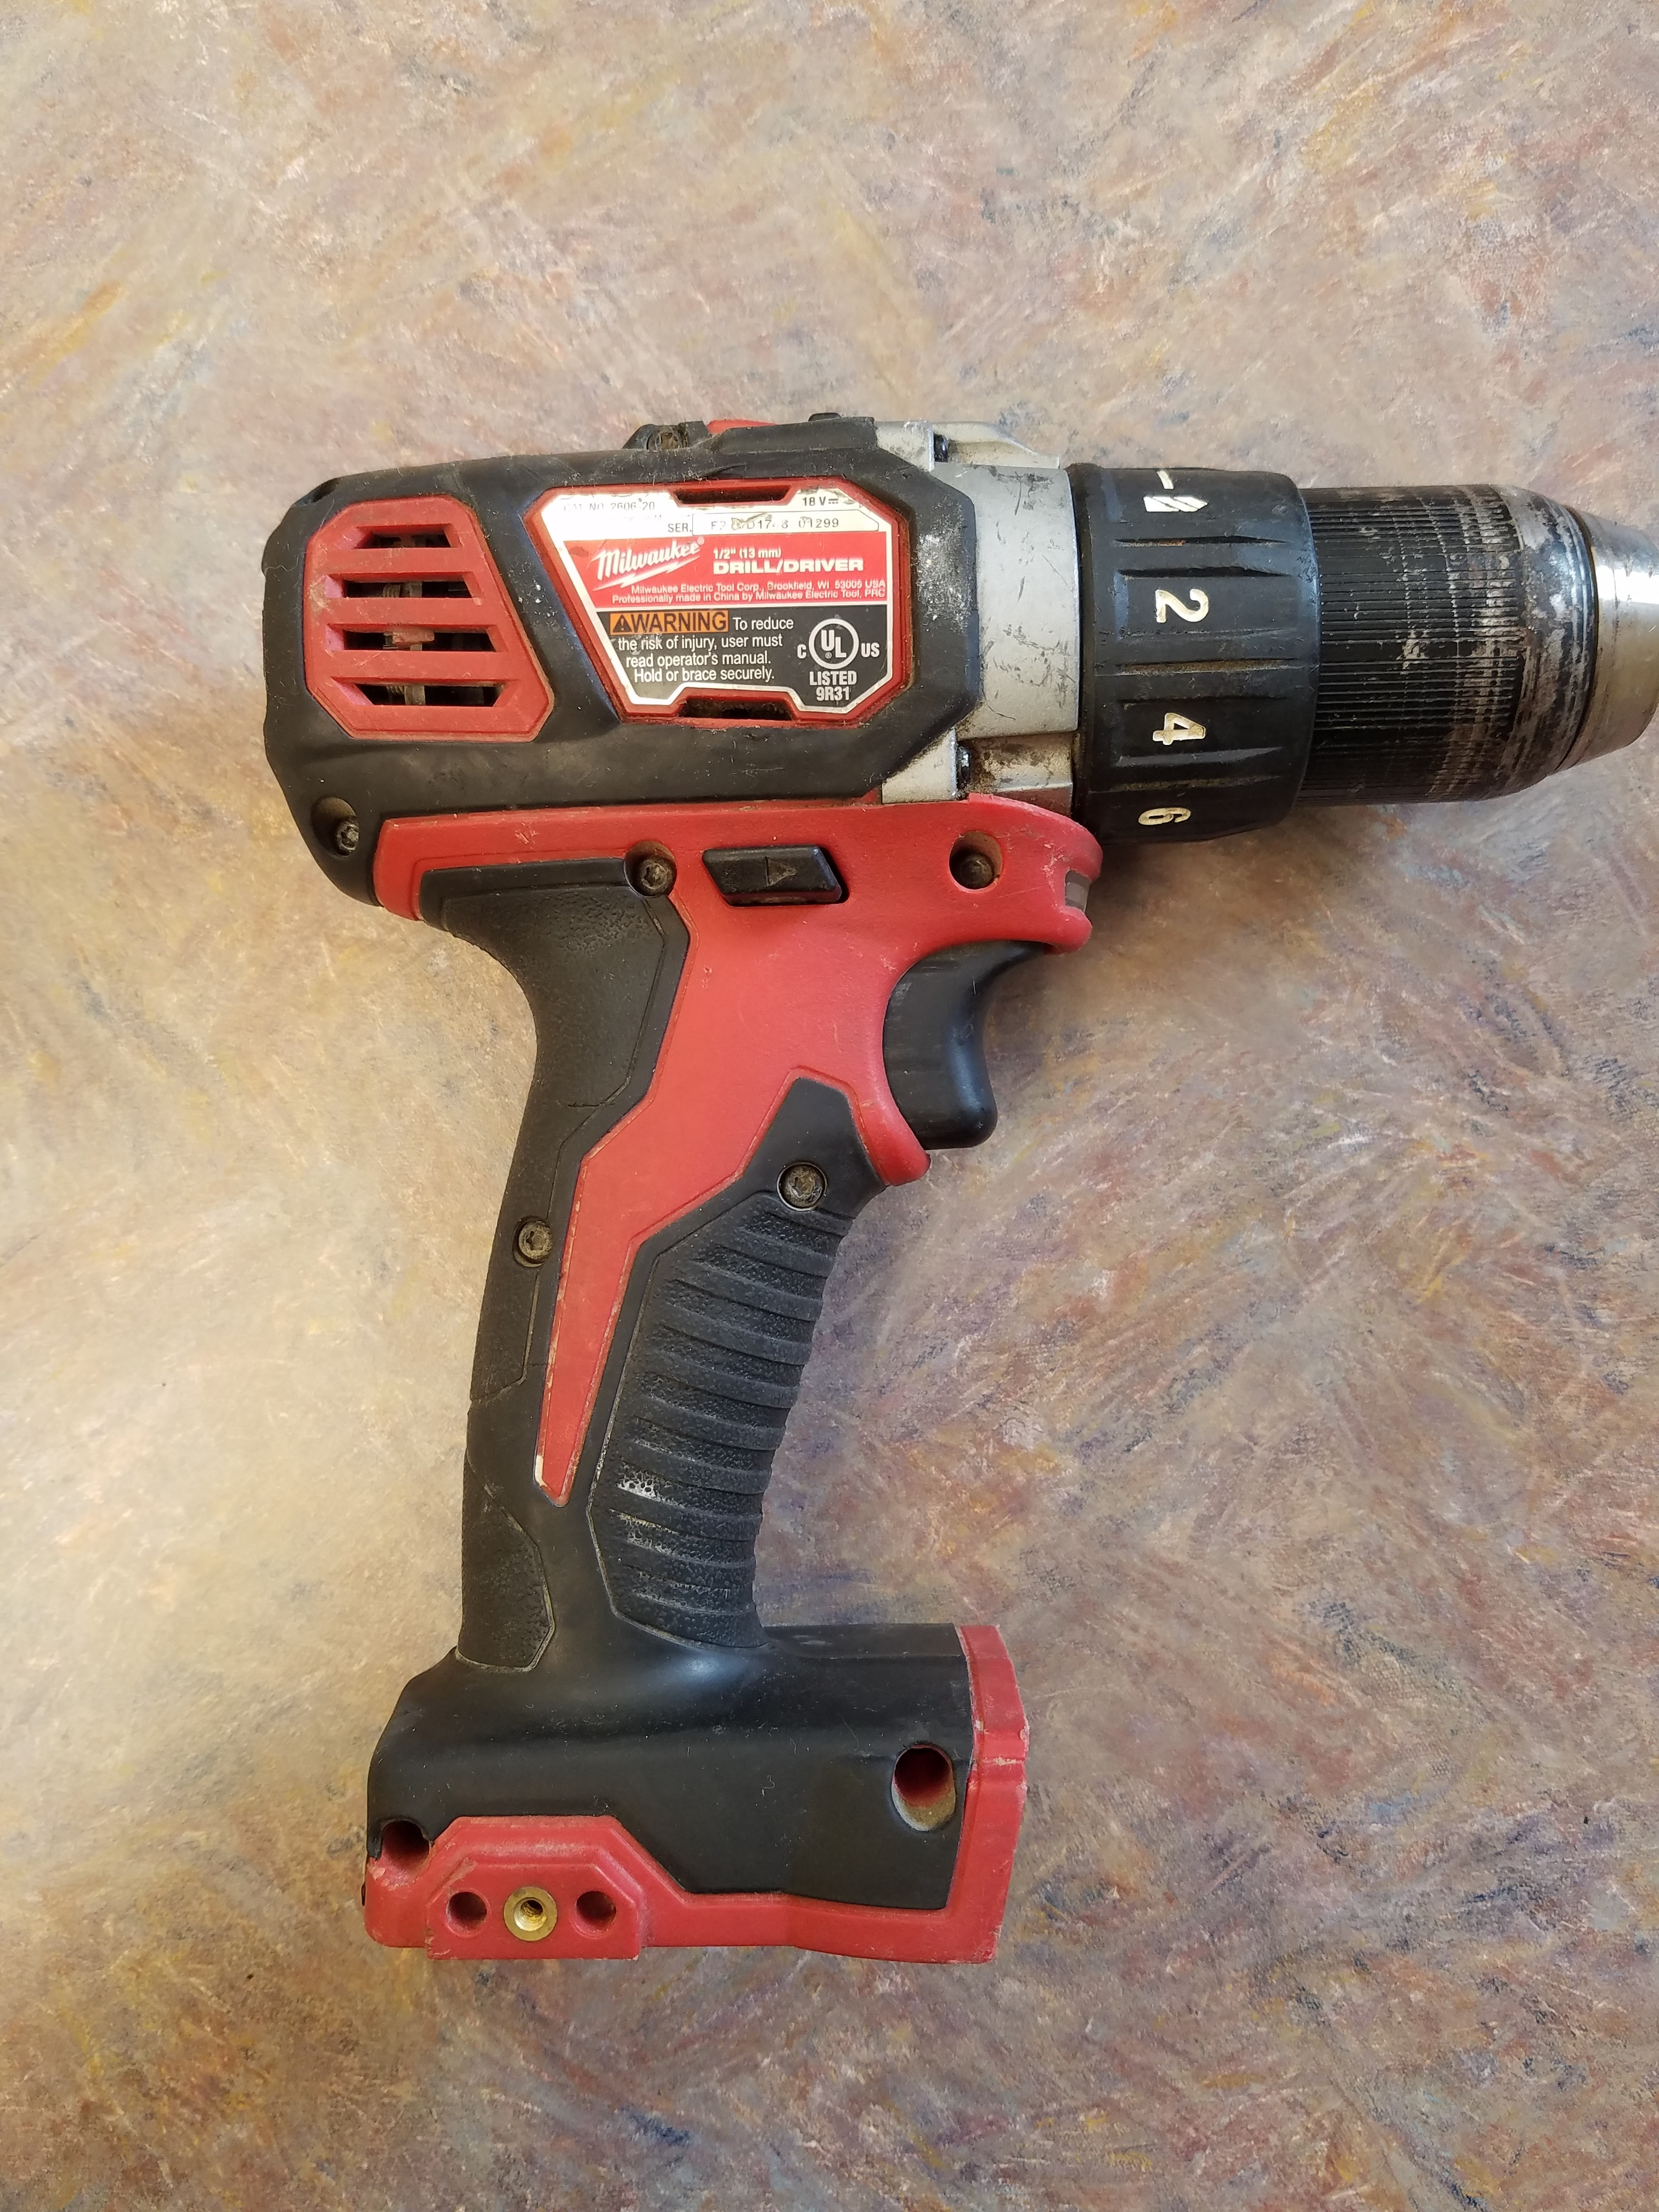 MILWAUKEE 2606-20 M18 DRILL DRIVER TOOL ONLY